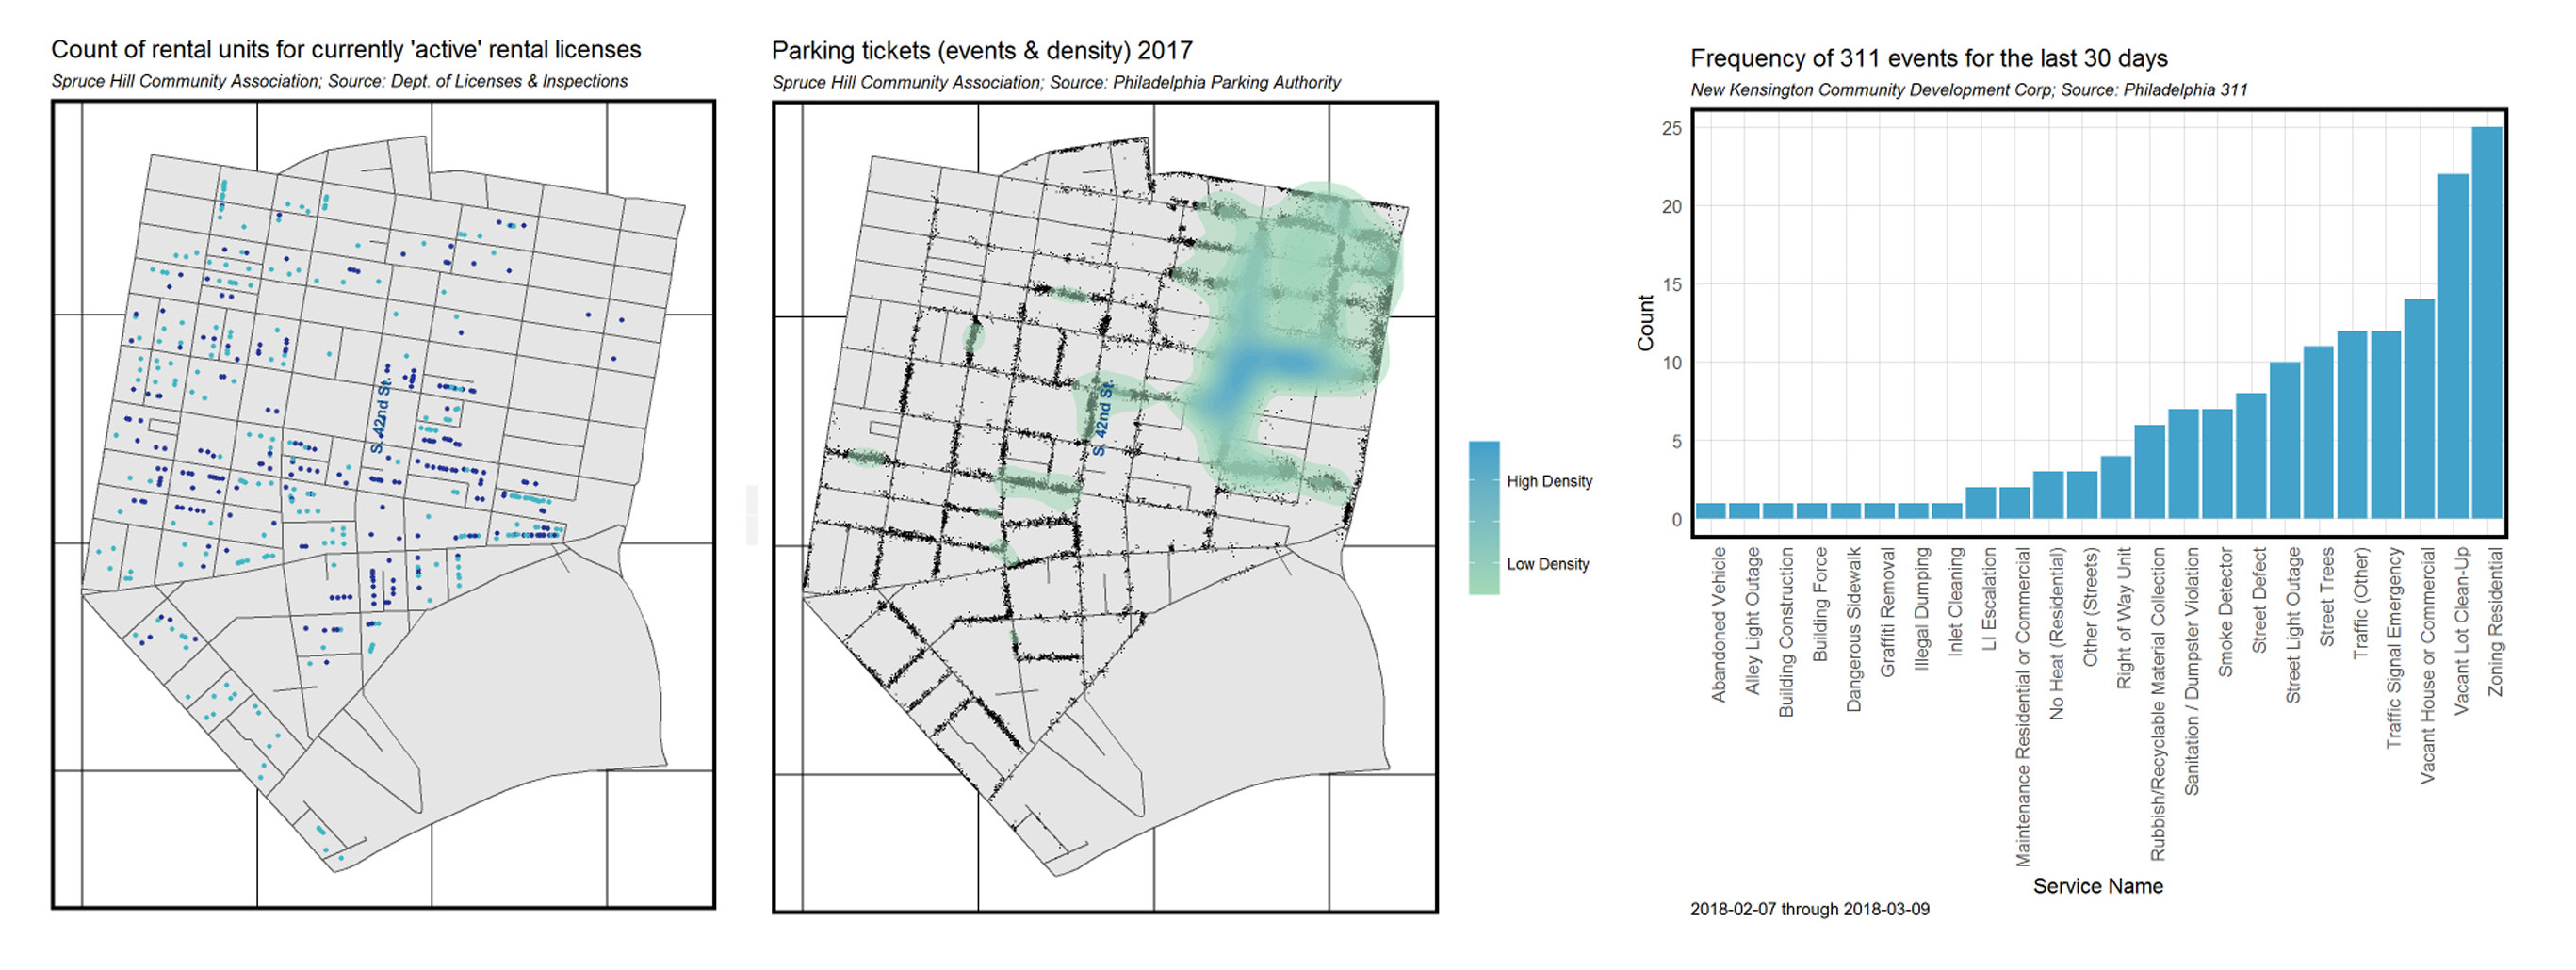 Count of rental units and parking data in Spruce Hill; 311 event frequencies over 30 days in Kensington. Credit: Ken Steif